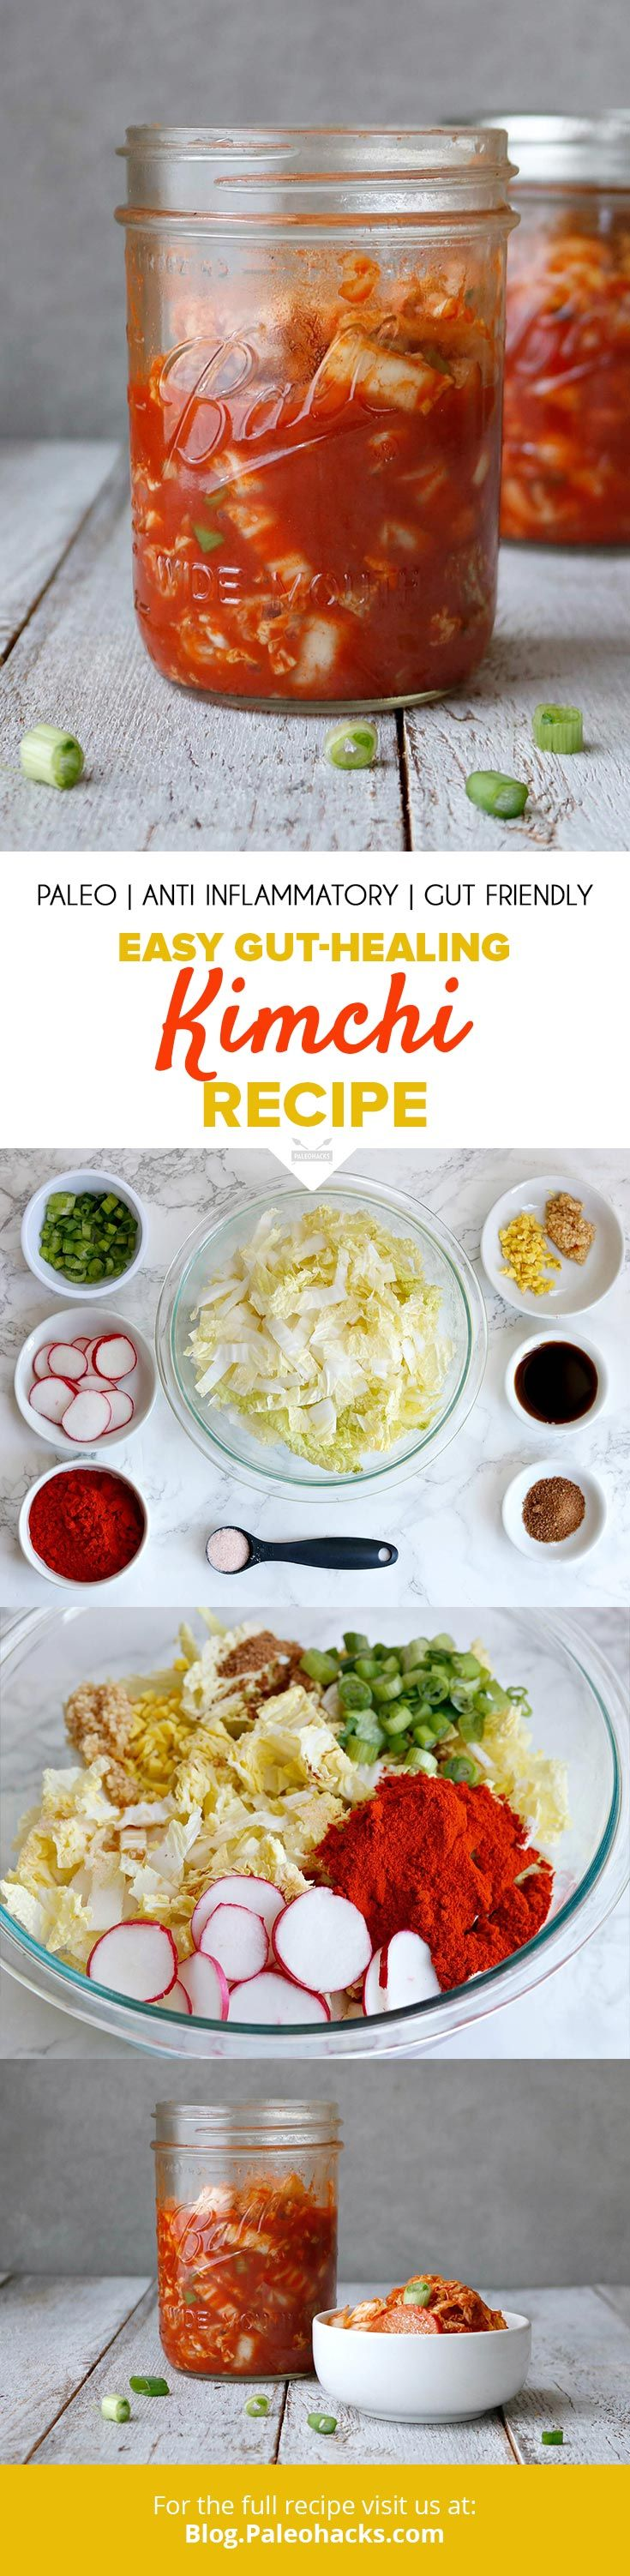 Shredded cabbage ferments with radishes, scallions, and ginger  for a homemade, Paleo-friendly kimchi rich in gut-healing probiotics. Get the full recipe here: http://paleo.co/kimchi